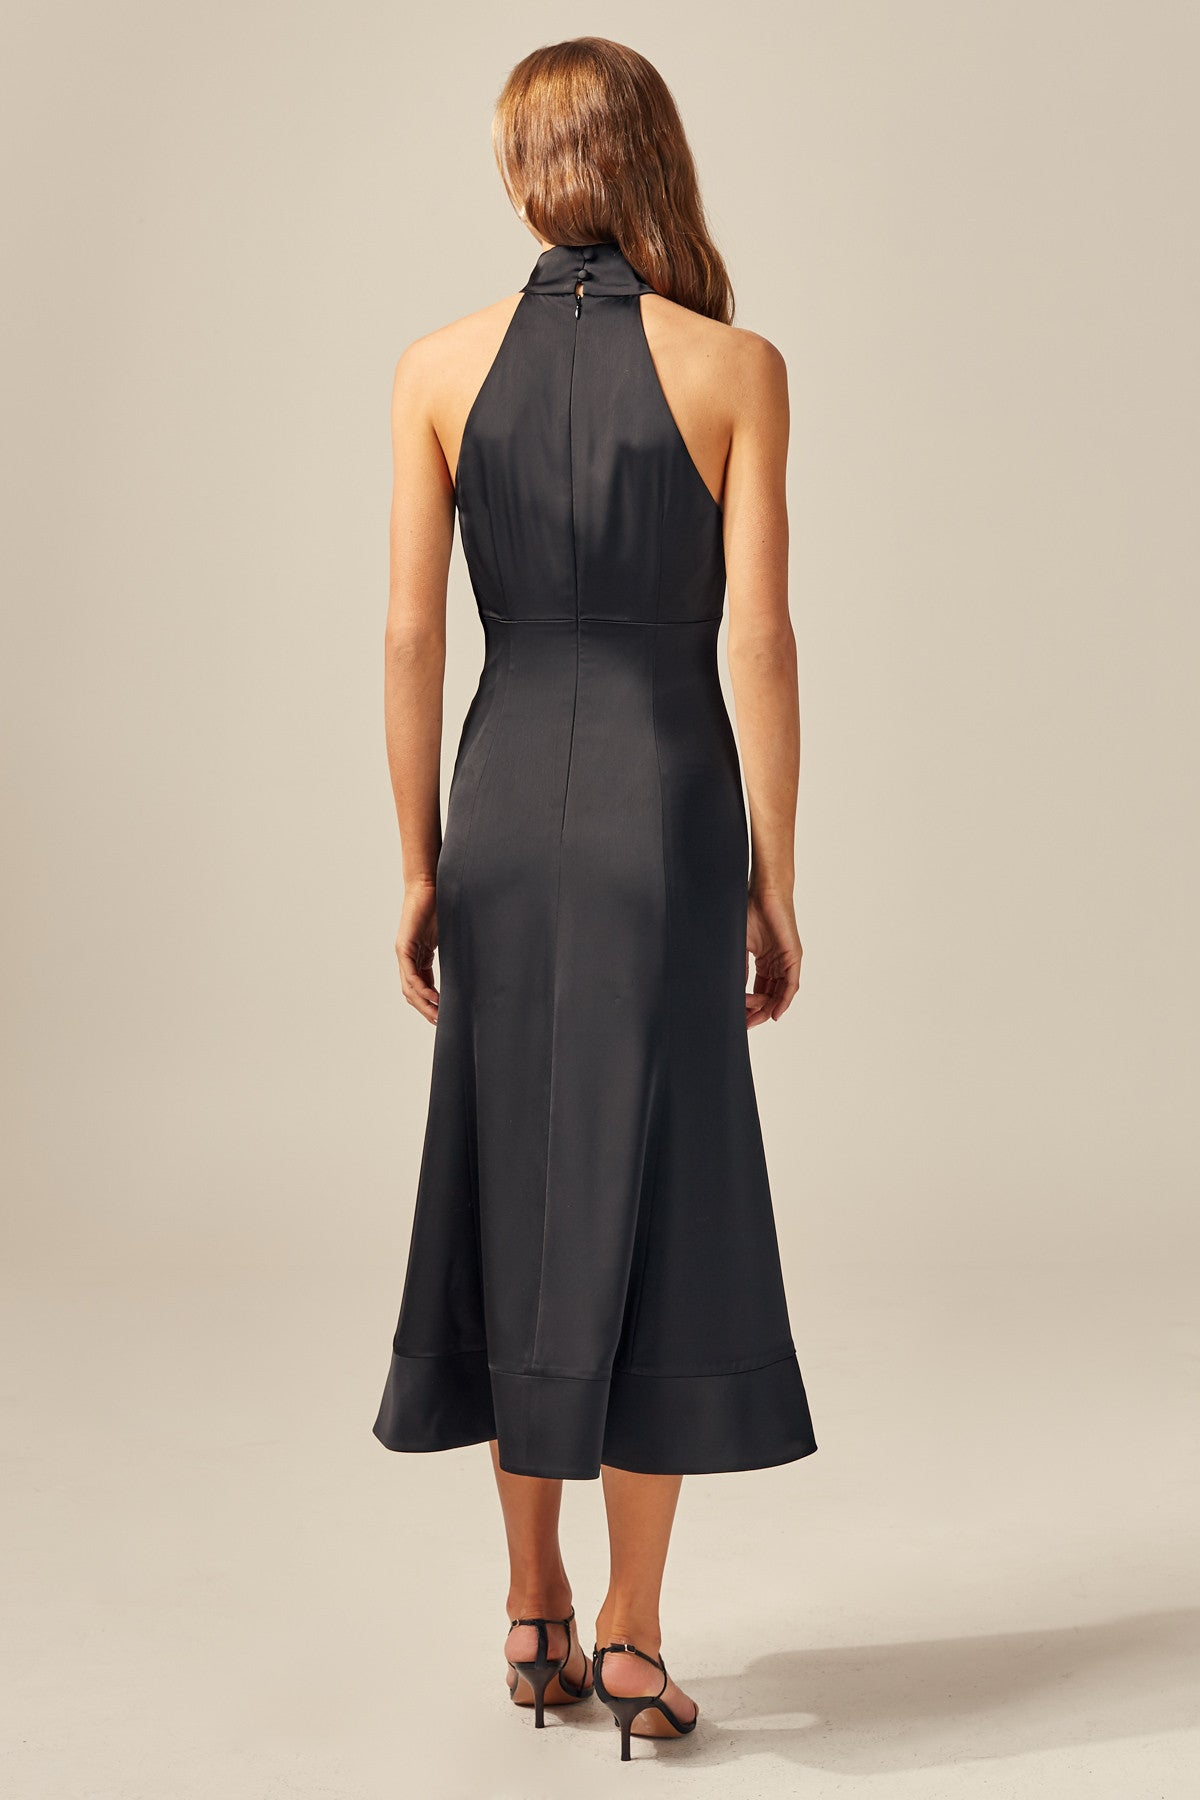 PROVIDED MIDI DRESS black